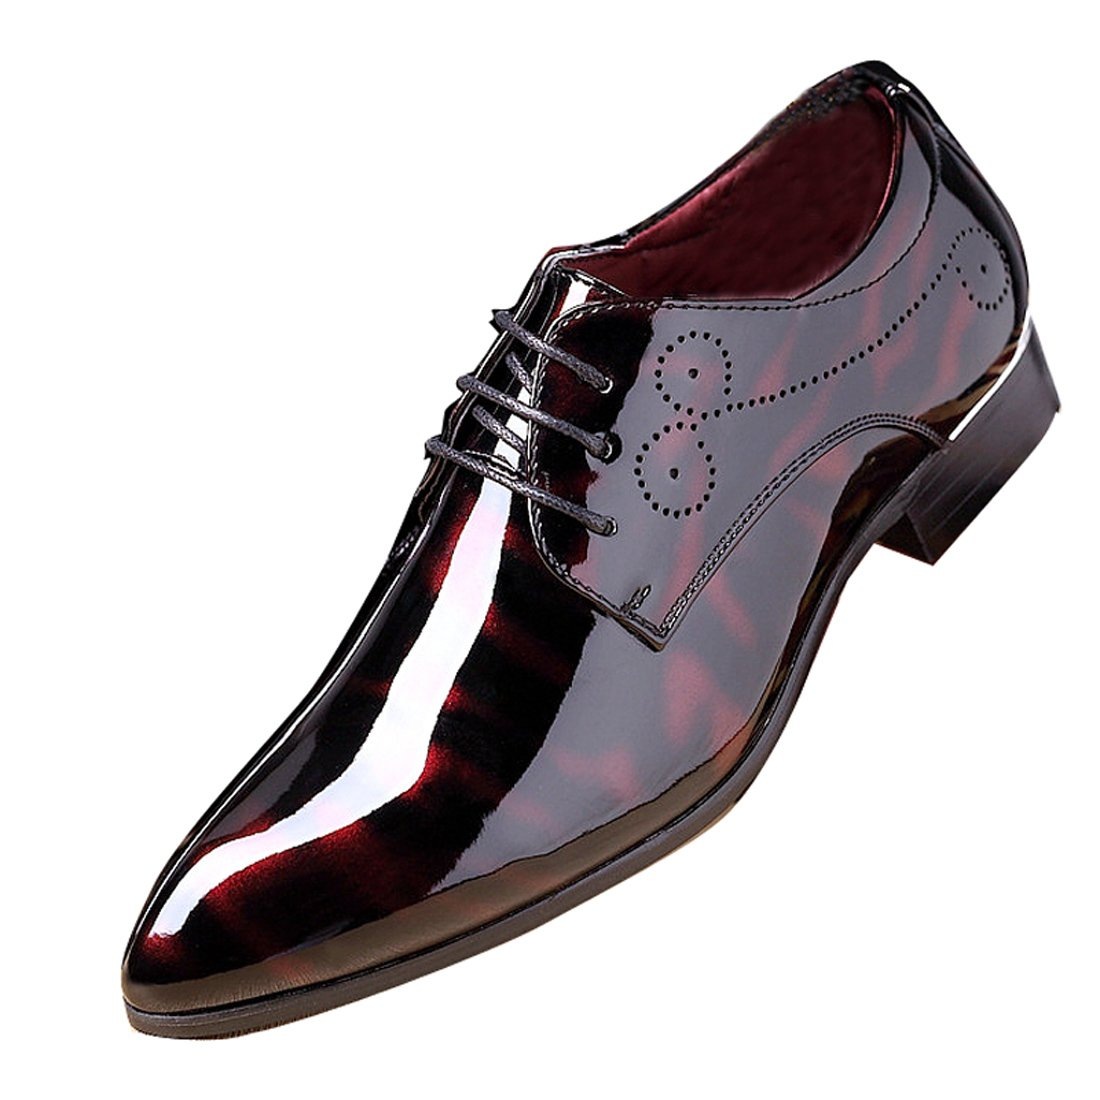 Men Fashion Dress Business Shoe Pointed Toe Floral Patent Leather Lace up Oxford Black Brown Red Grey